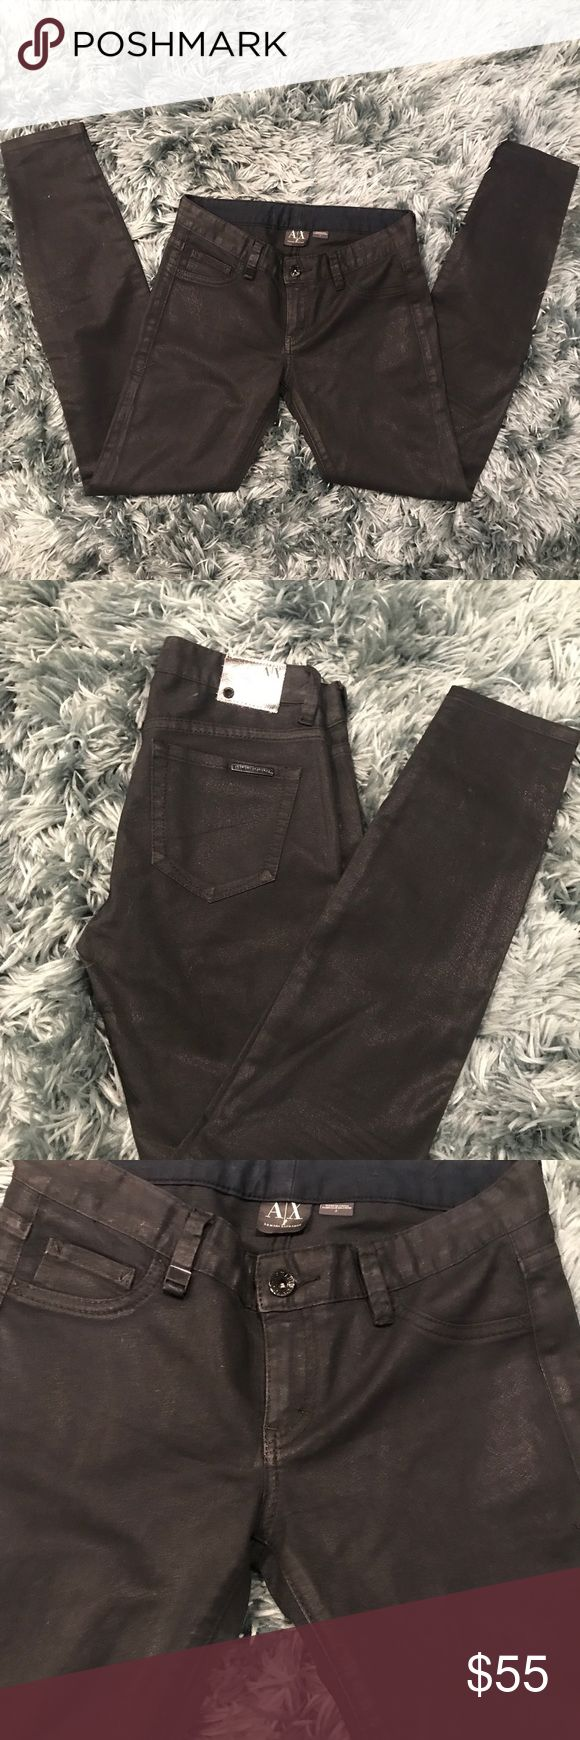 """Armani Exchange Coated Skinny Jeans NWOT AX Black Coated Skinny Jeans.  These coated skinny jeans are like mascara for your legs! Details  Faux front pockets  2 back pockets  Waist 14"""" Outseam 37.5"""" Inseam 29"""" Rise 7.5"""" Size 2 A/X Armani Exchange Jeans Skinny"""